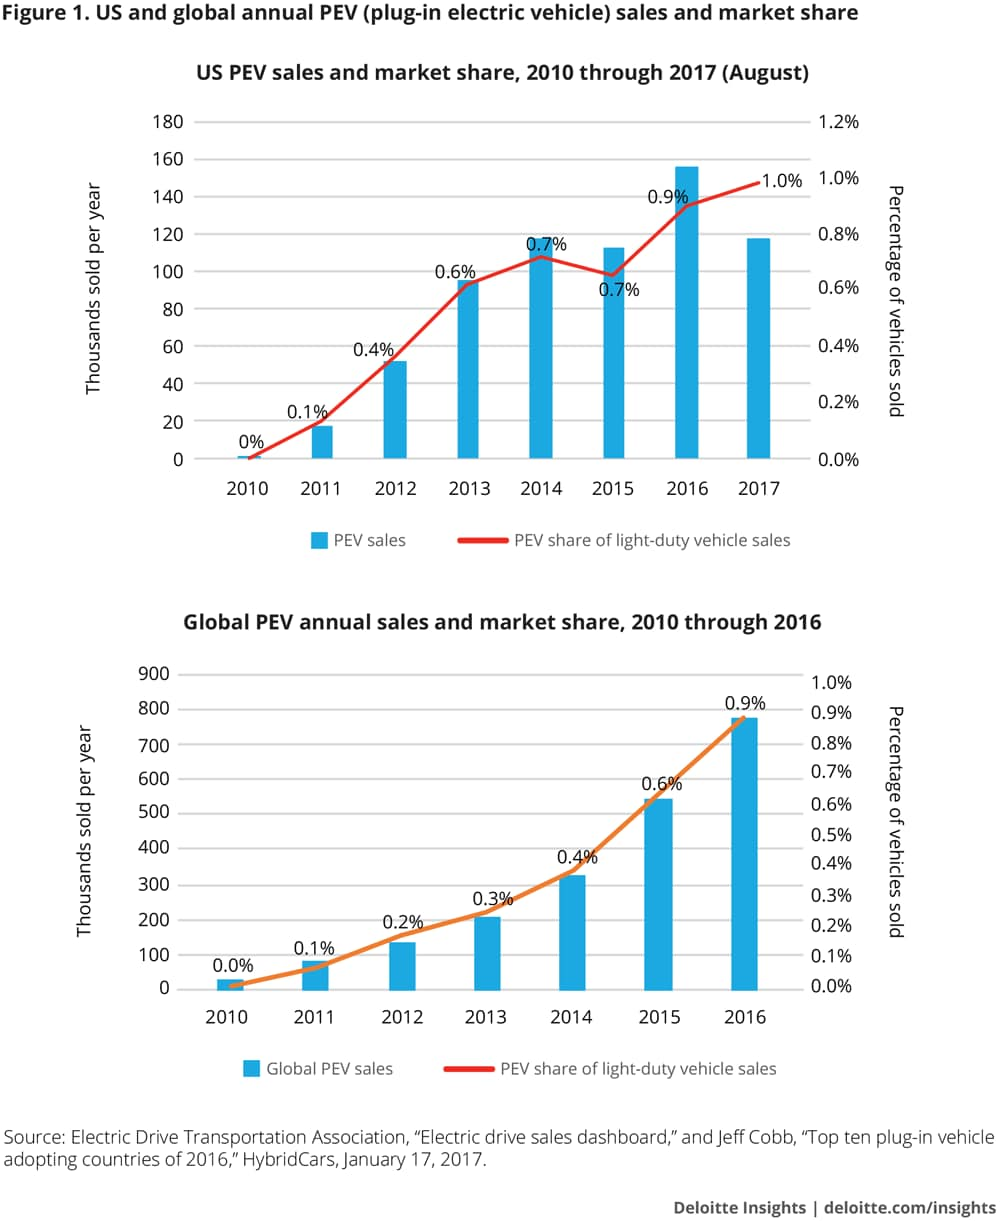 US and global annual PEV sales and market share